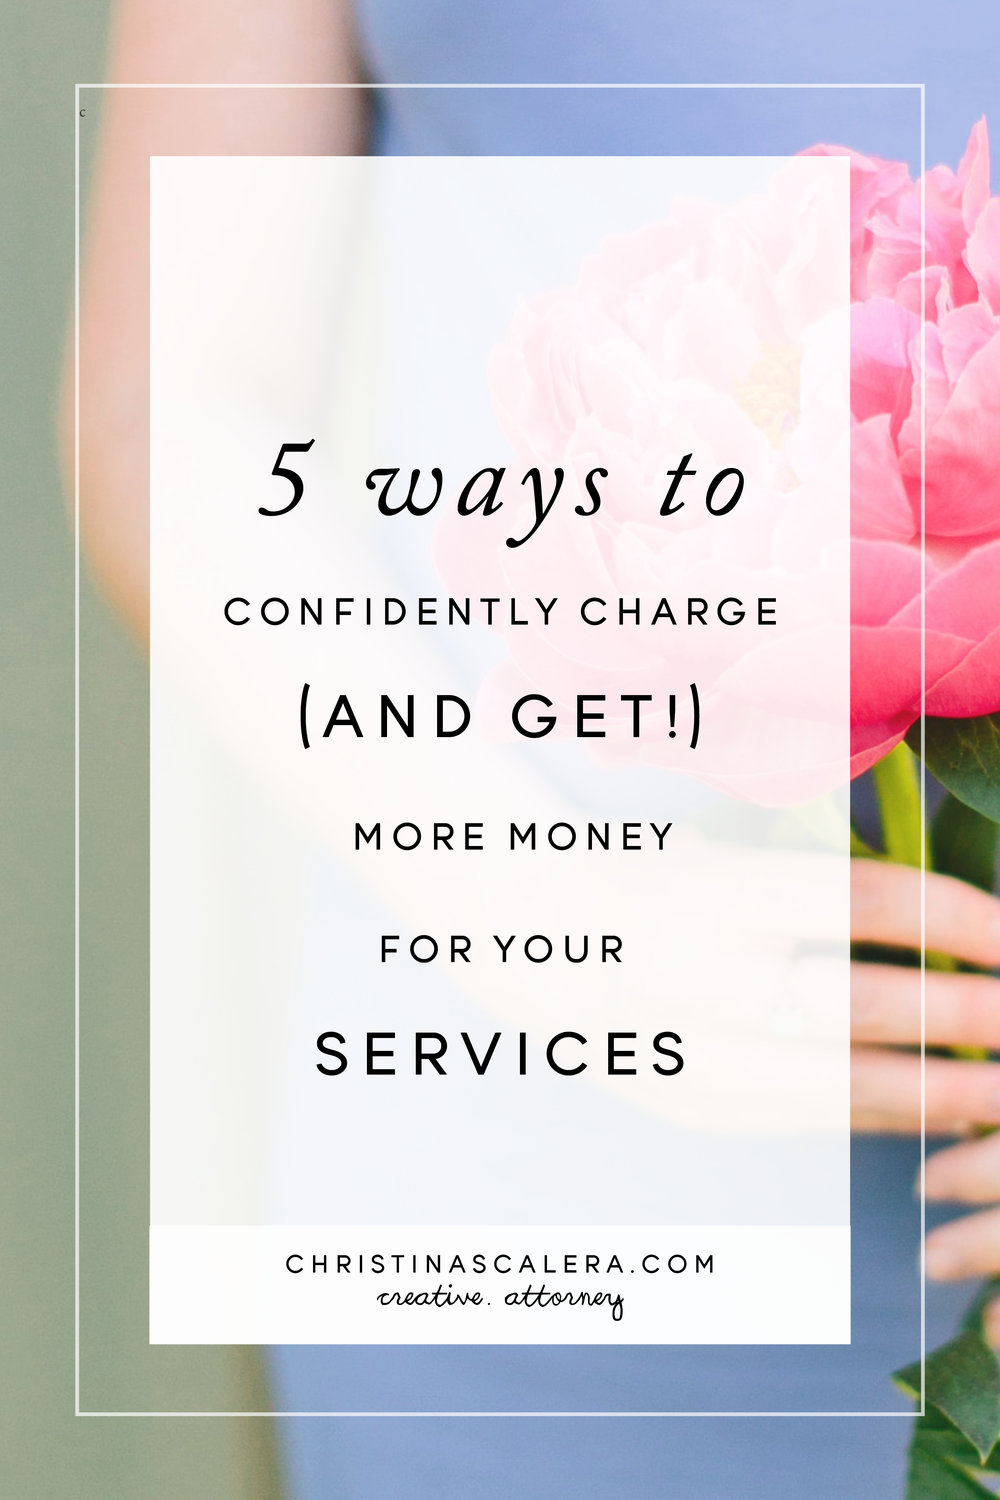 5 Ways to confidently charge and get more money for your services!